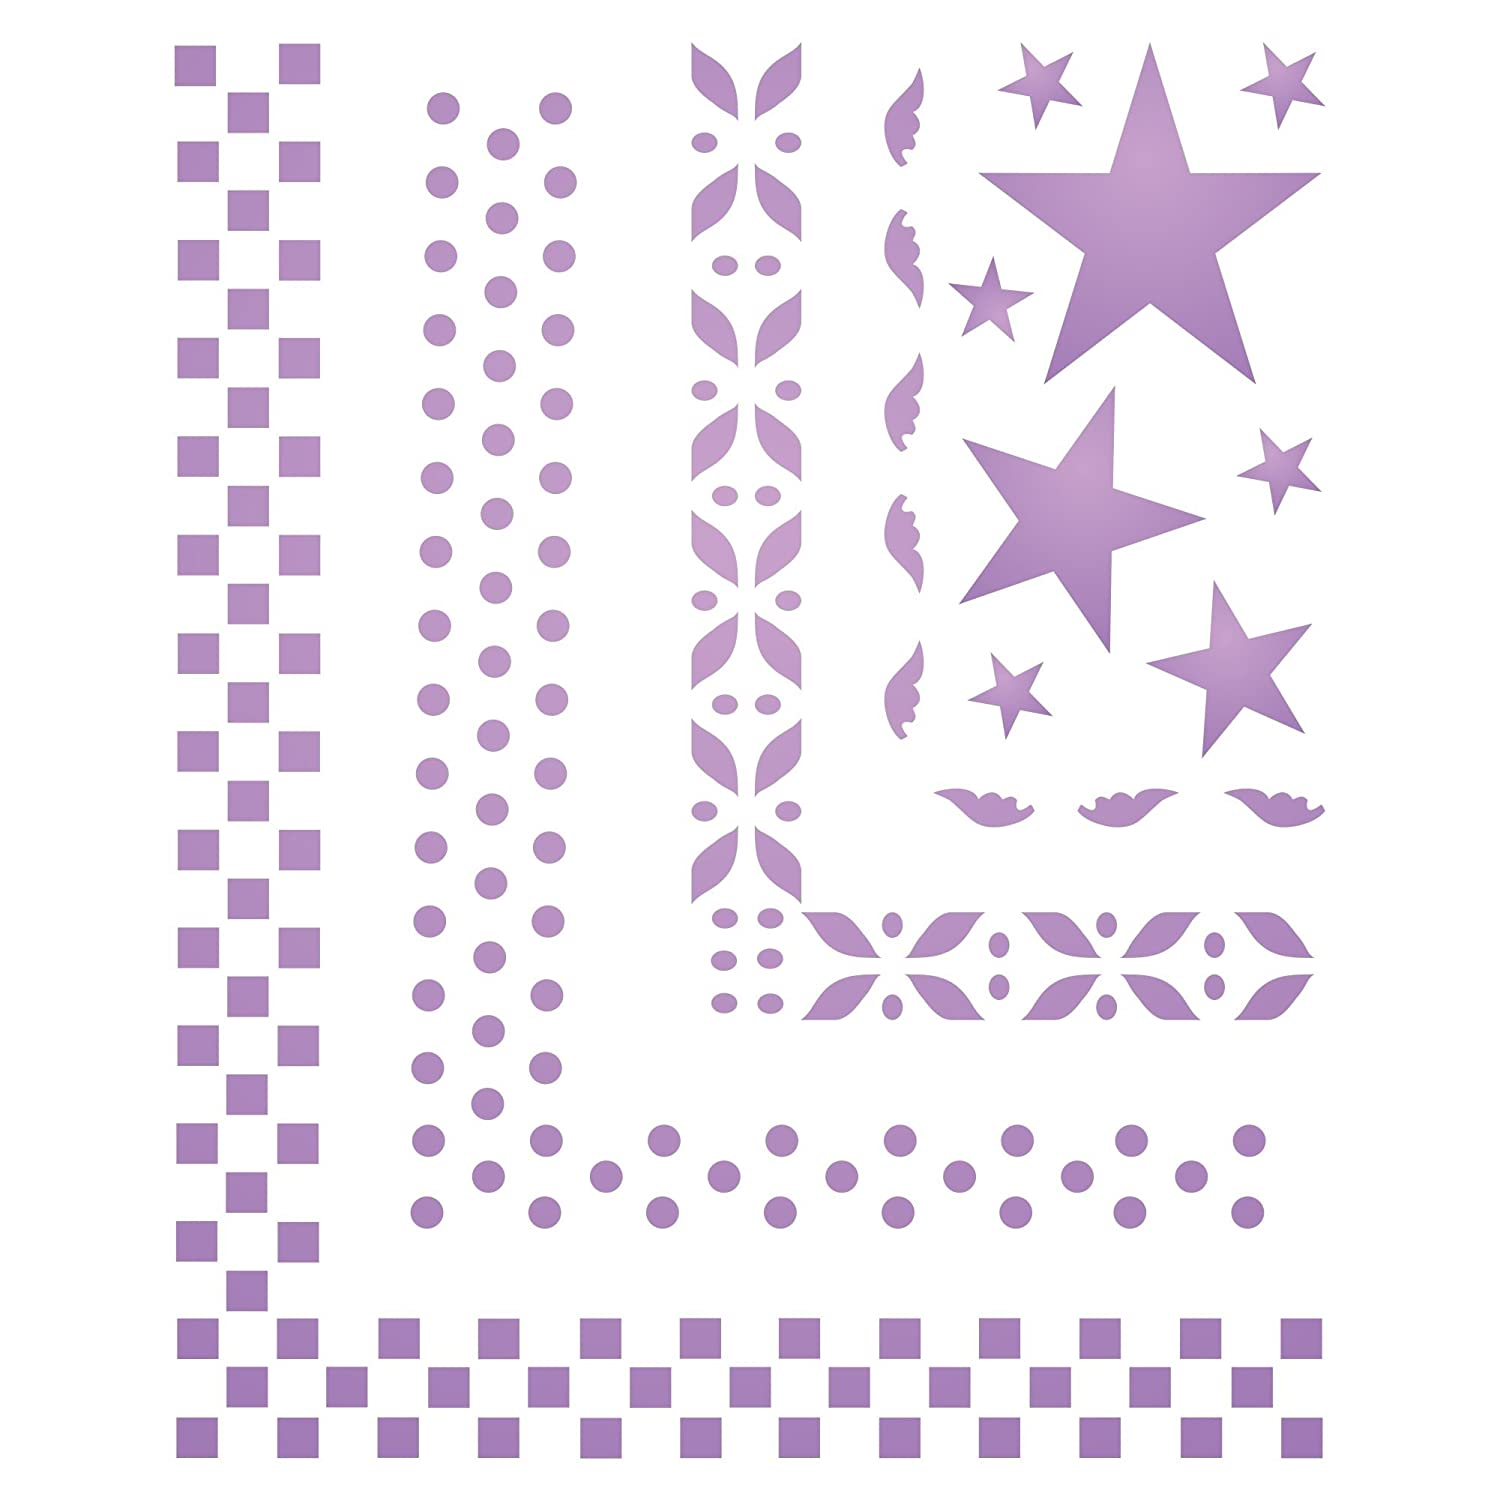 Borders Scrapbooking Stencil Size 4 1 H X 3 3 W Reusable Stencils For Painting Best Quality Wall Art D Cor Ideas Use On Paper Projects Walls Floors Fabrics Glass Wood Cards And More